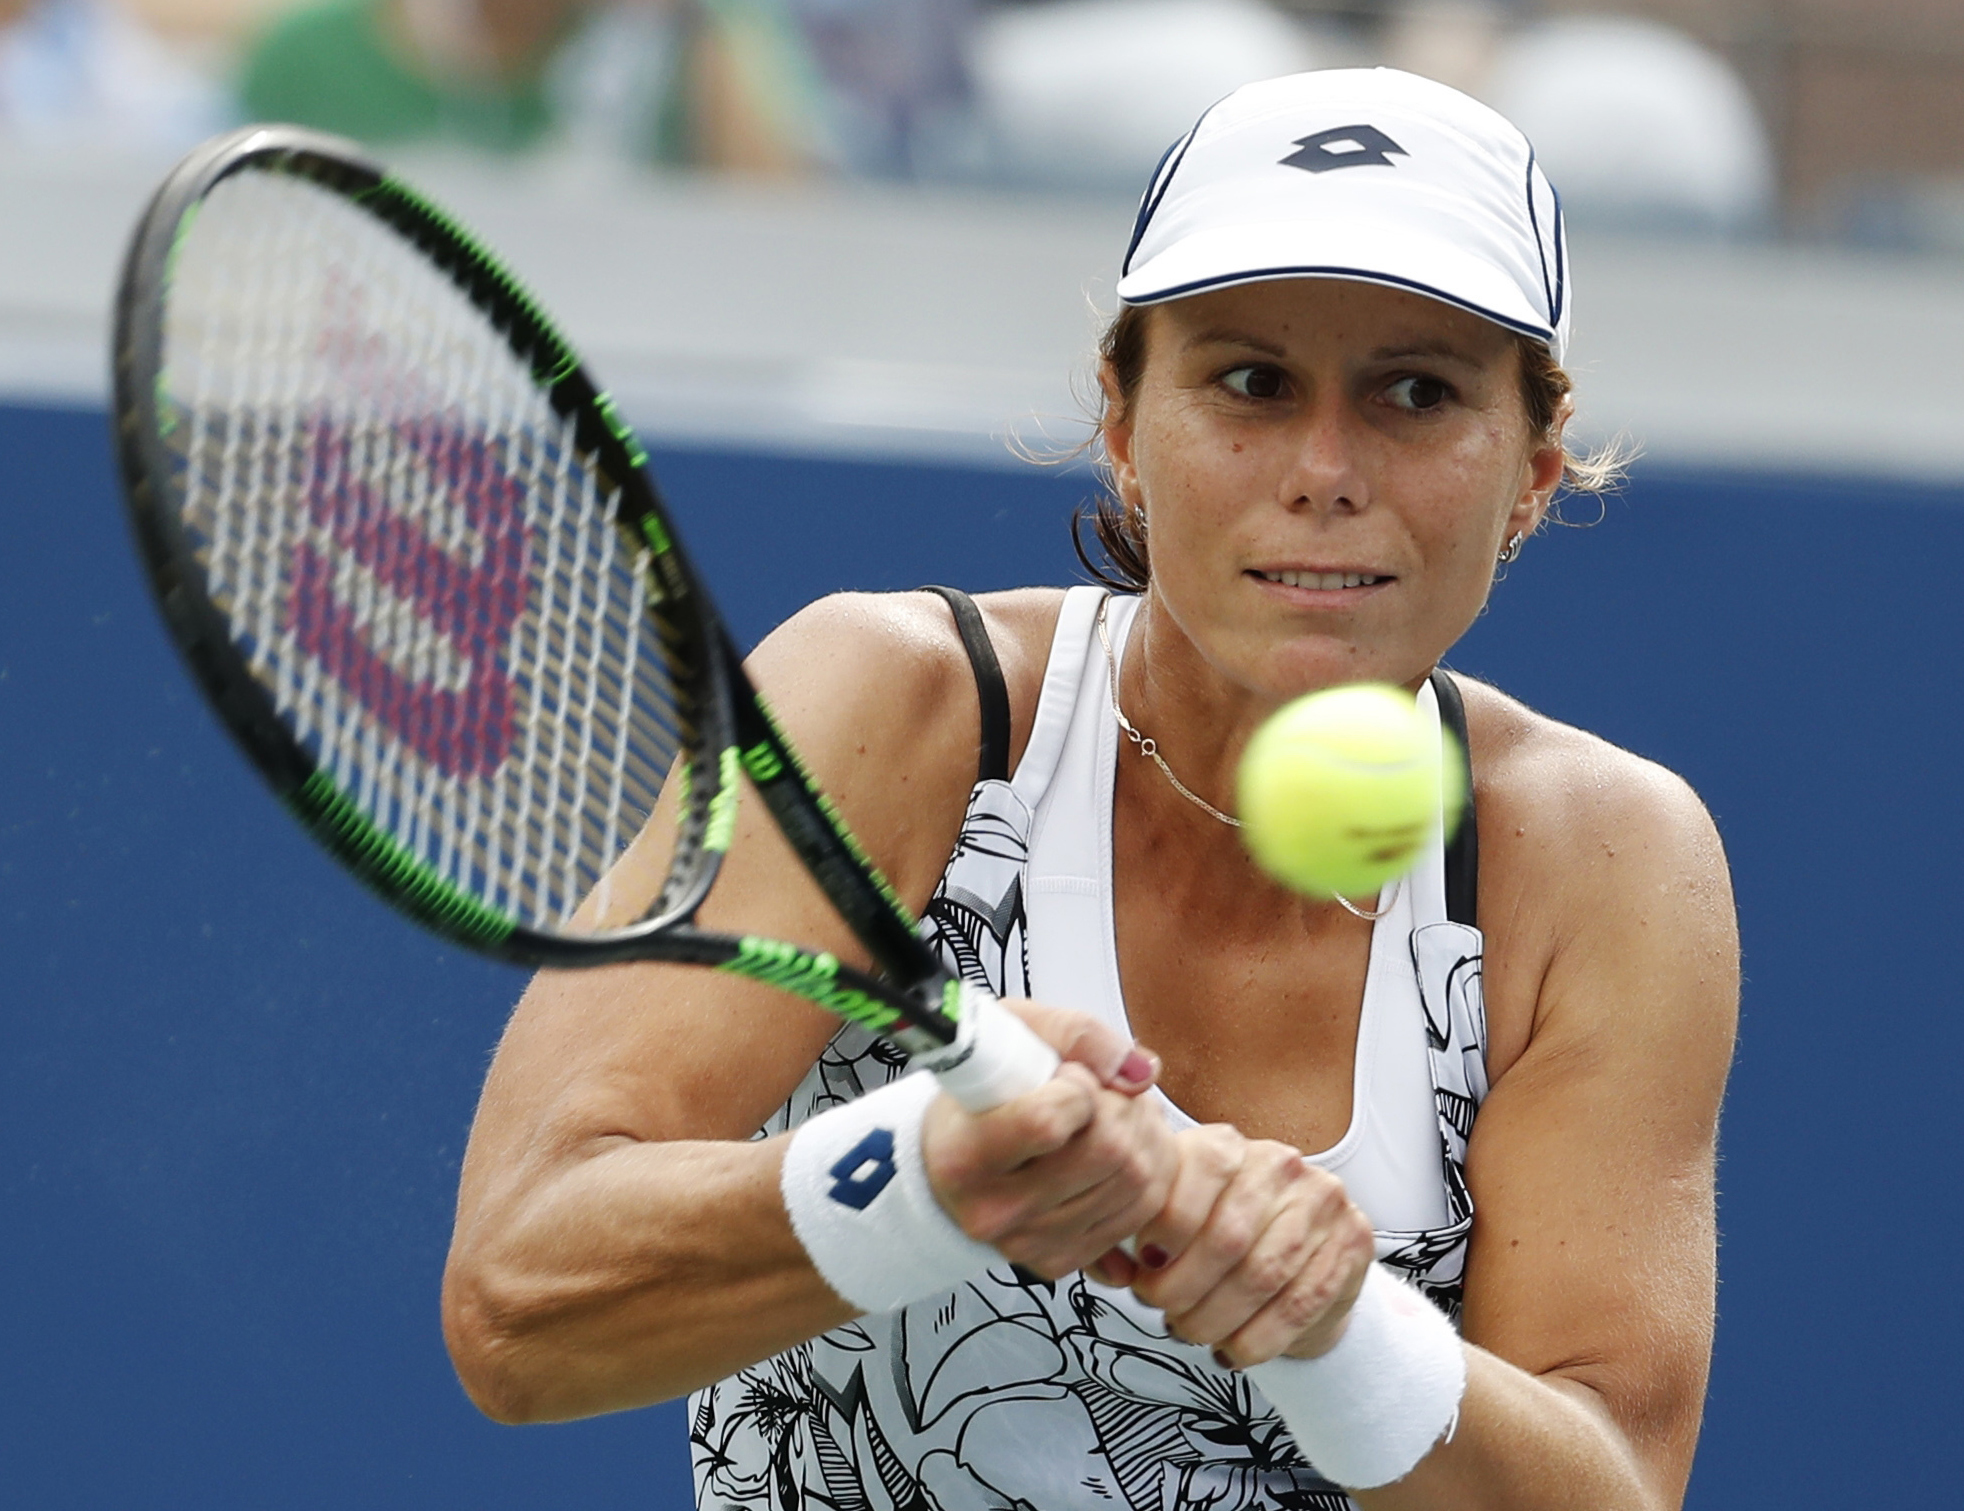 FILE - In this Sept. 3, 2016, file photo, Varvara Lepchenko, of the United States, returns a shot to Ana Konjuh, of Croatia, during the third round of the U.S. Open tennis tournament in New York. Lepchenko tested positive four times for meldonium, accordi